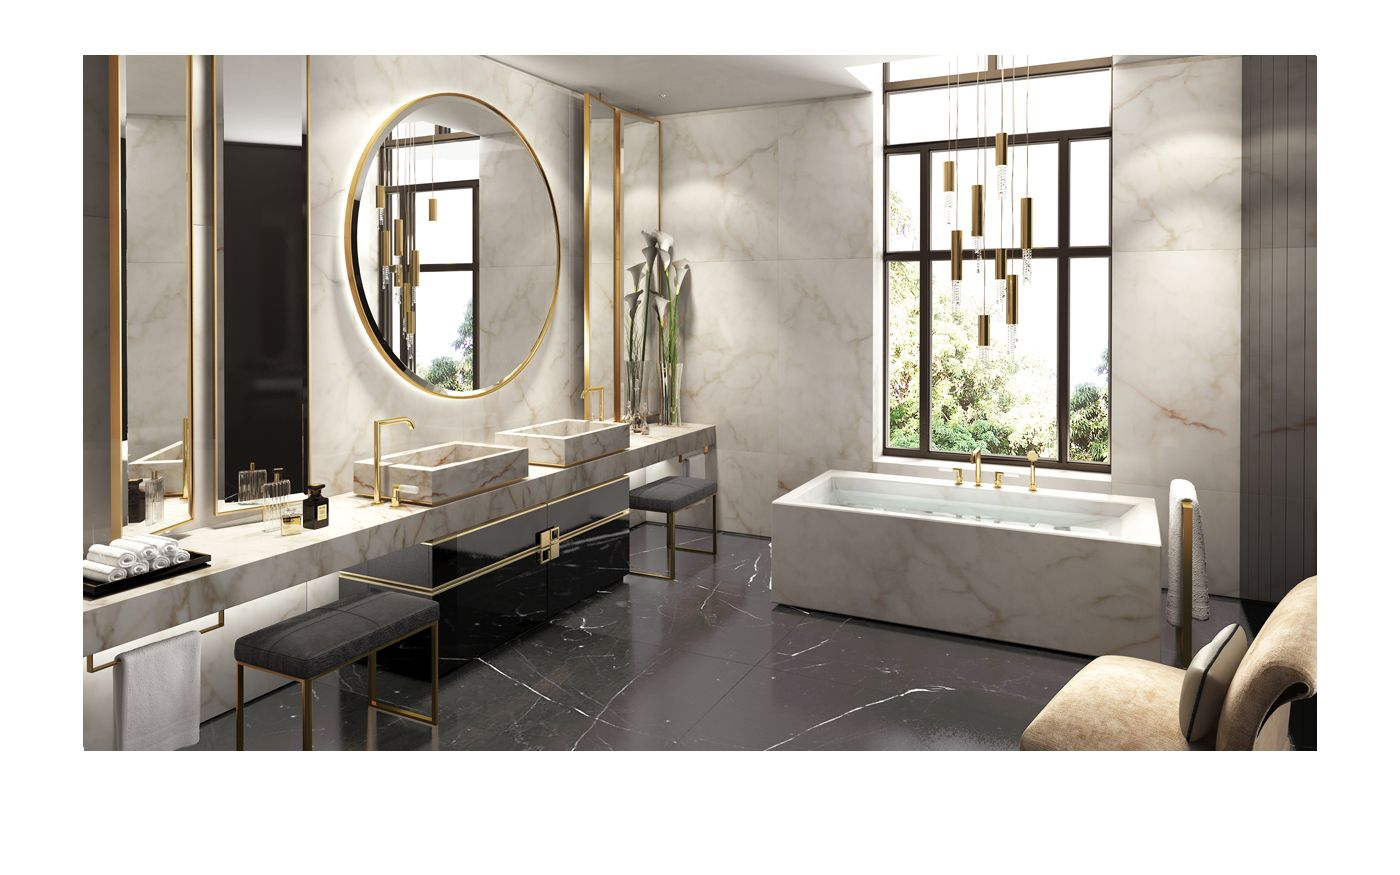 1508 London The Luxury Design House Made In London Interiors Bathrooms Pinterest